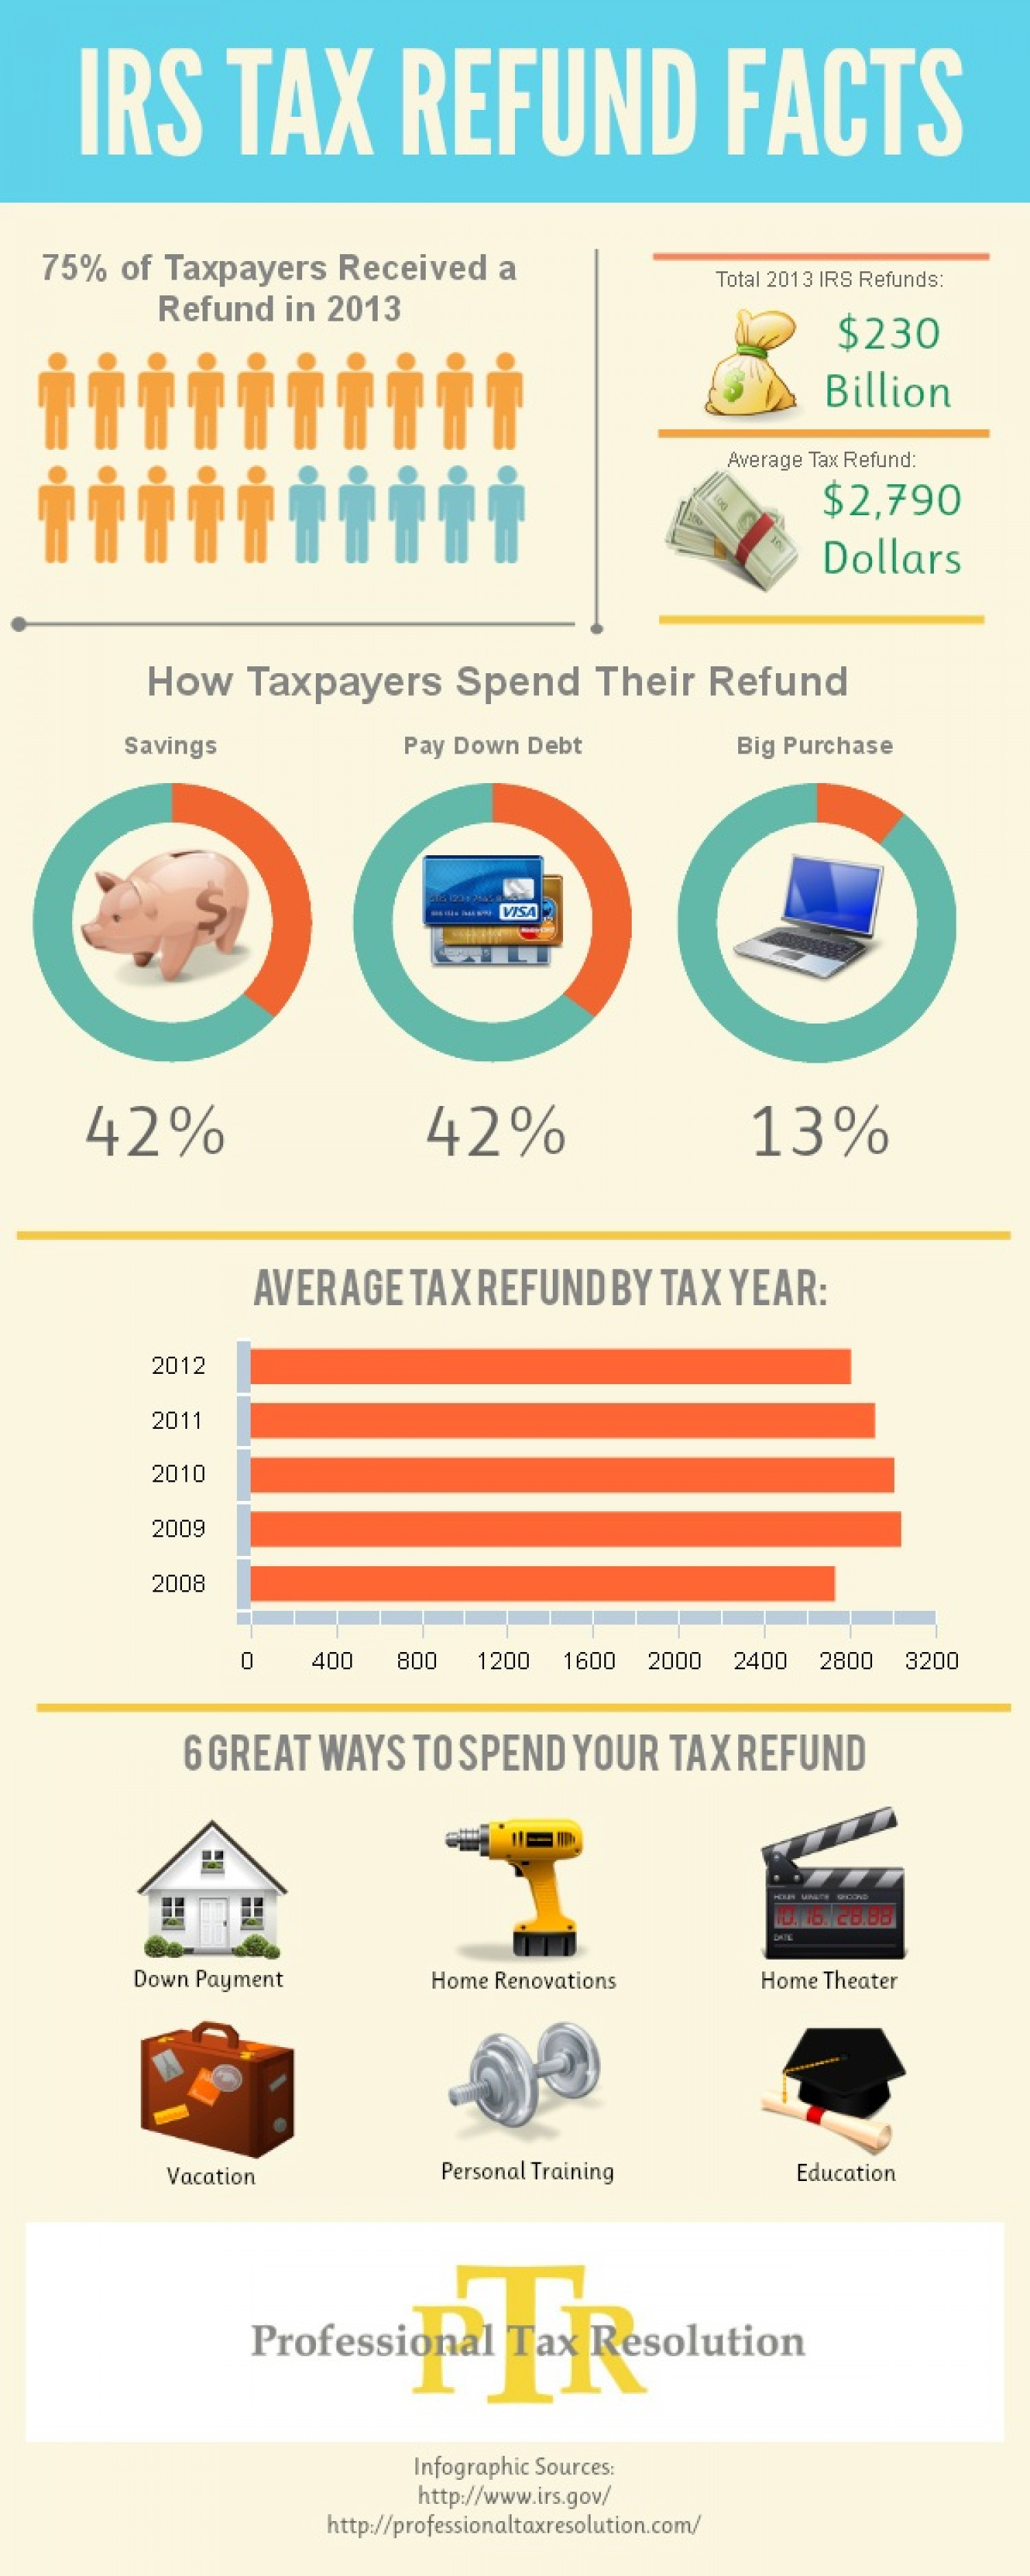 Free Infographic: Fun IRS Refund Facts & Information Infographic